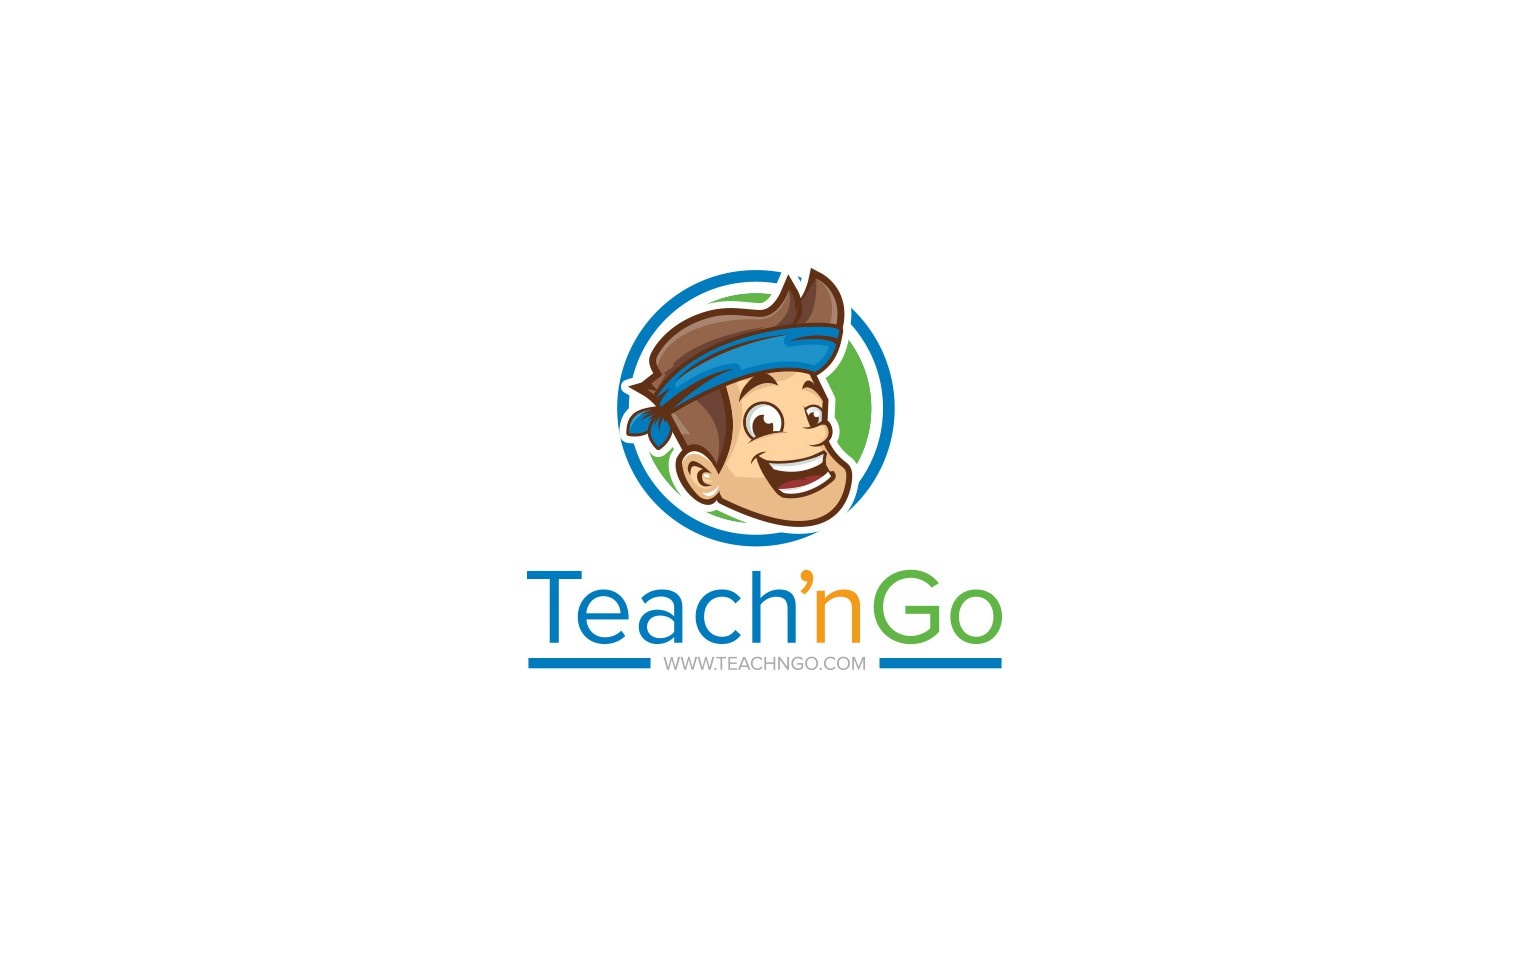 School management platform needs a fun new logo to bring a smile to our users' face!